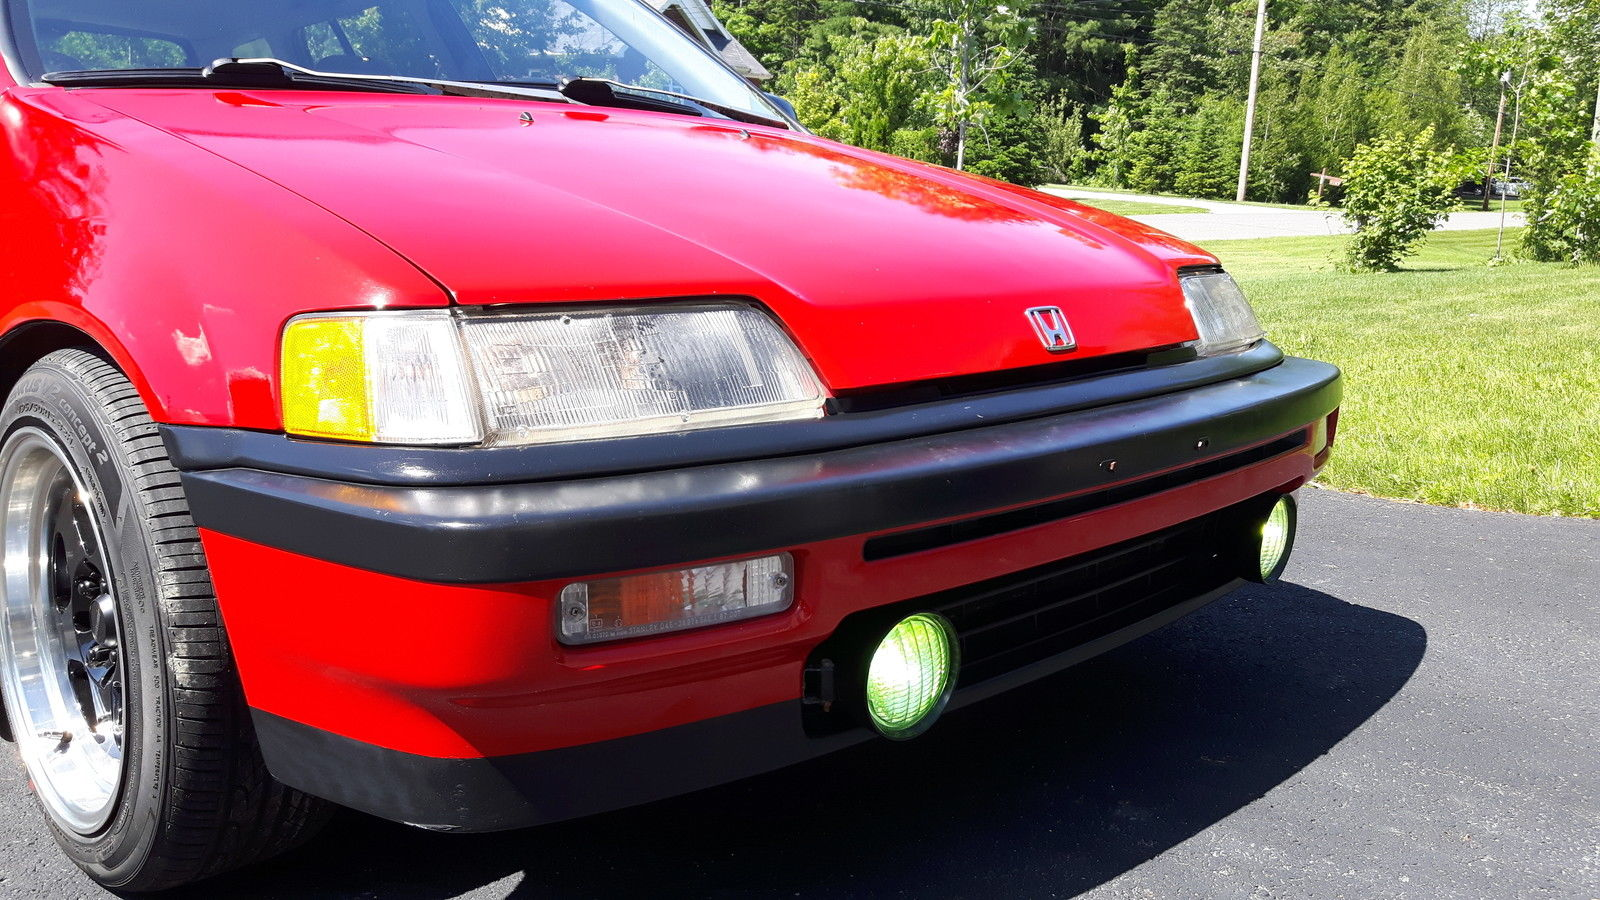 For Sale 4wd Honda Civic Wagon With A Dohc Zc Inline Four Engine Wiring Harness Try Watching This Video On Youtubecom Or Enable Javascript If It Is Disabled In Your Browser